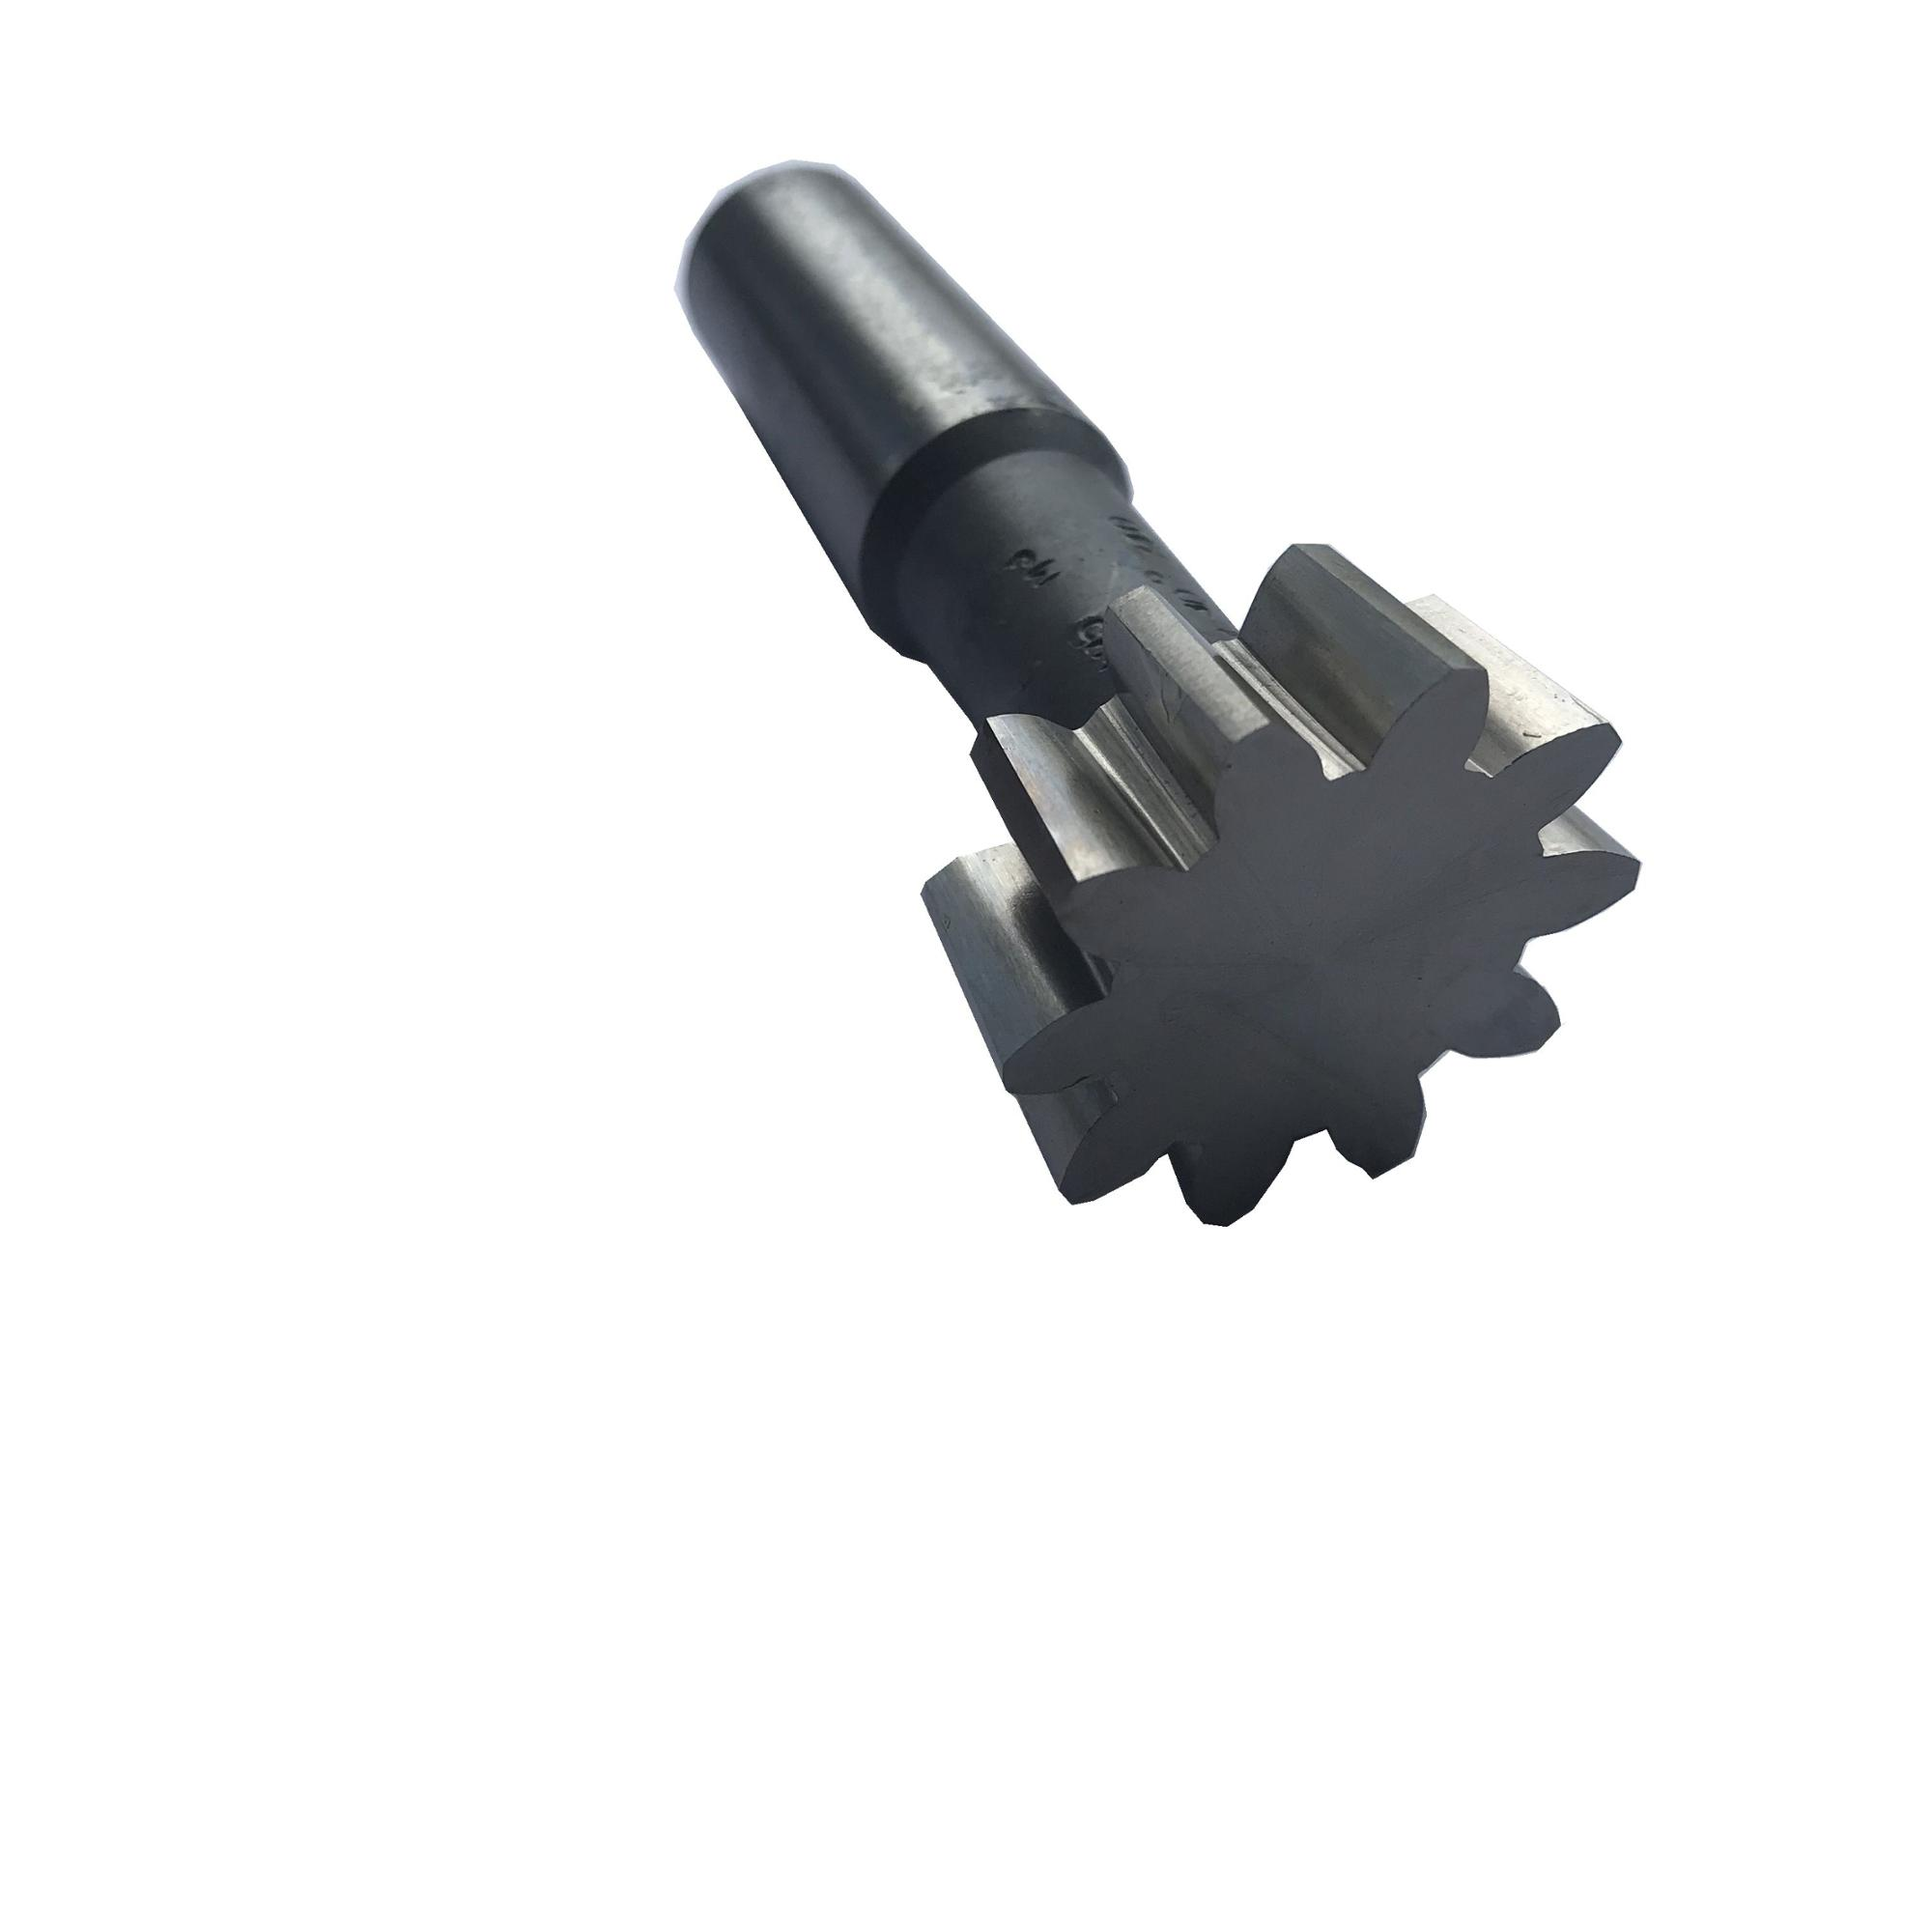 Standard or Non-standard worm gear straight tooth bevel gear